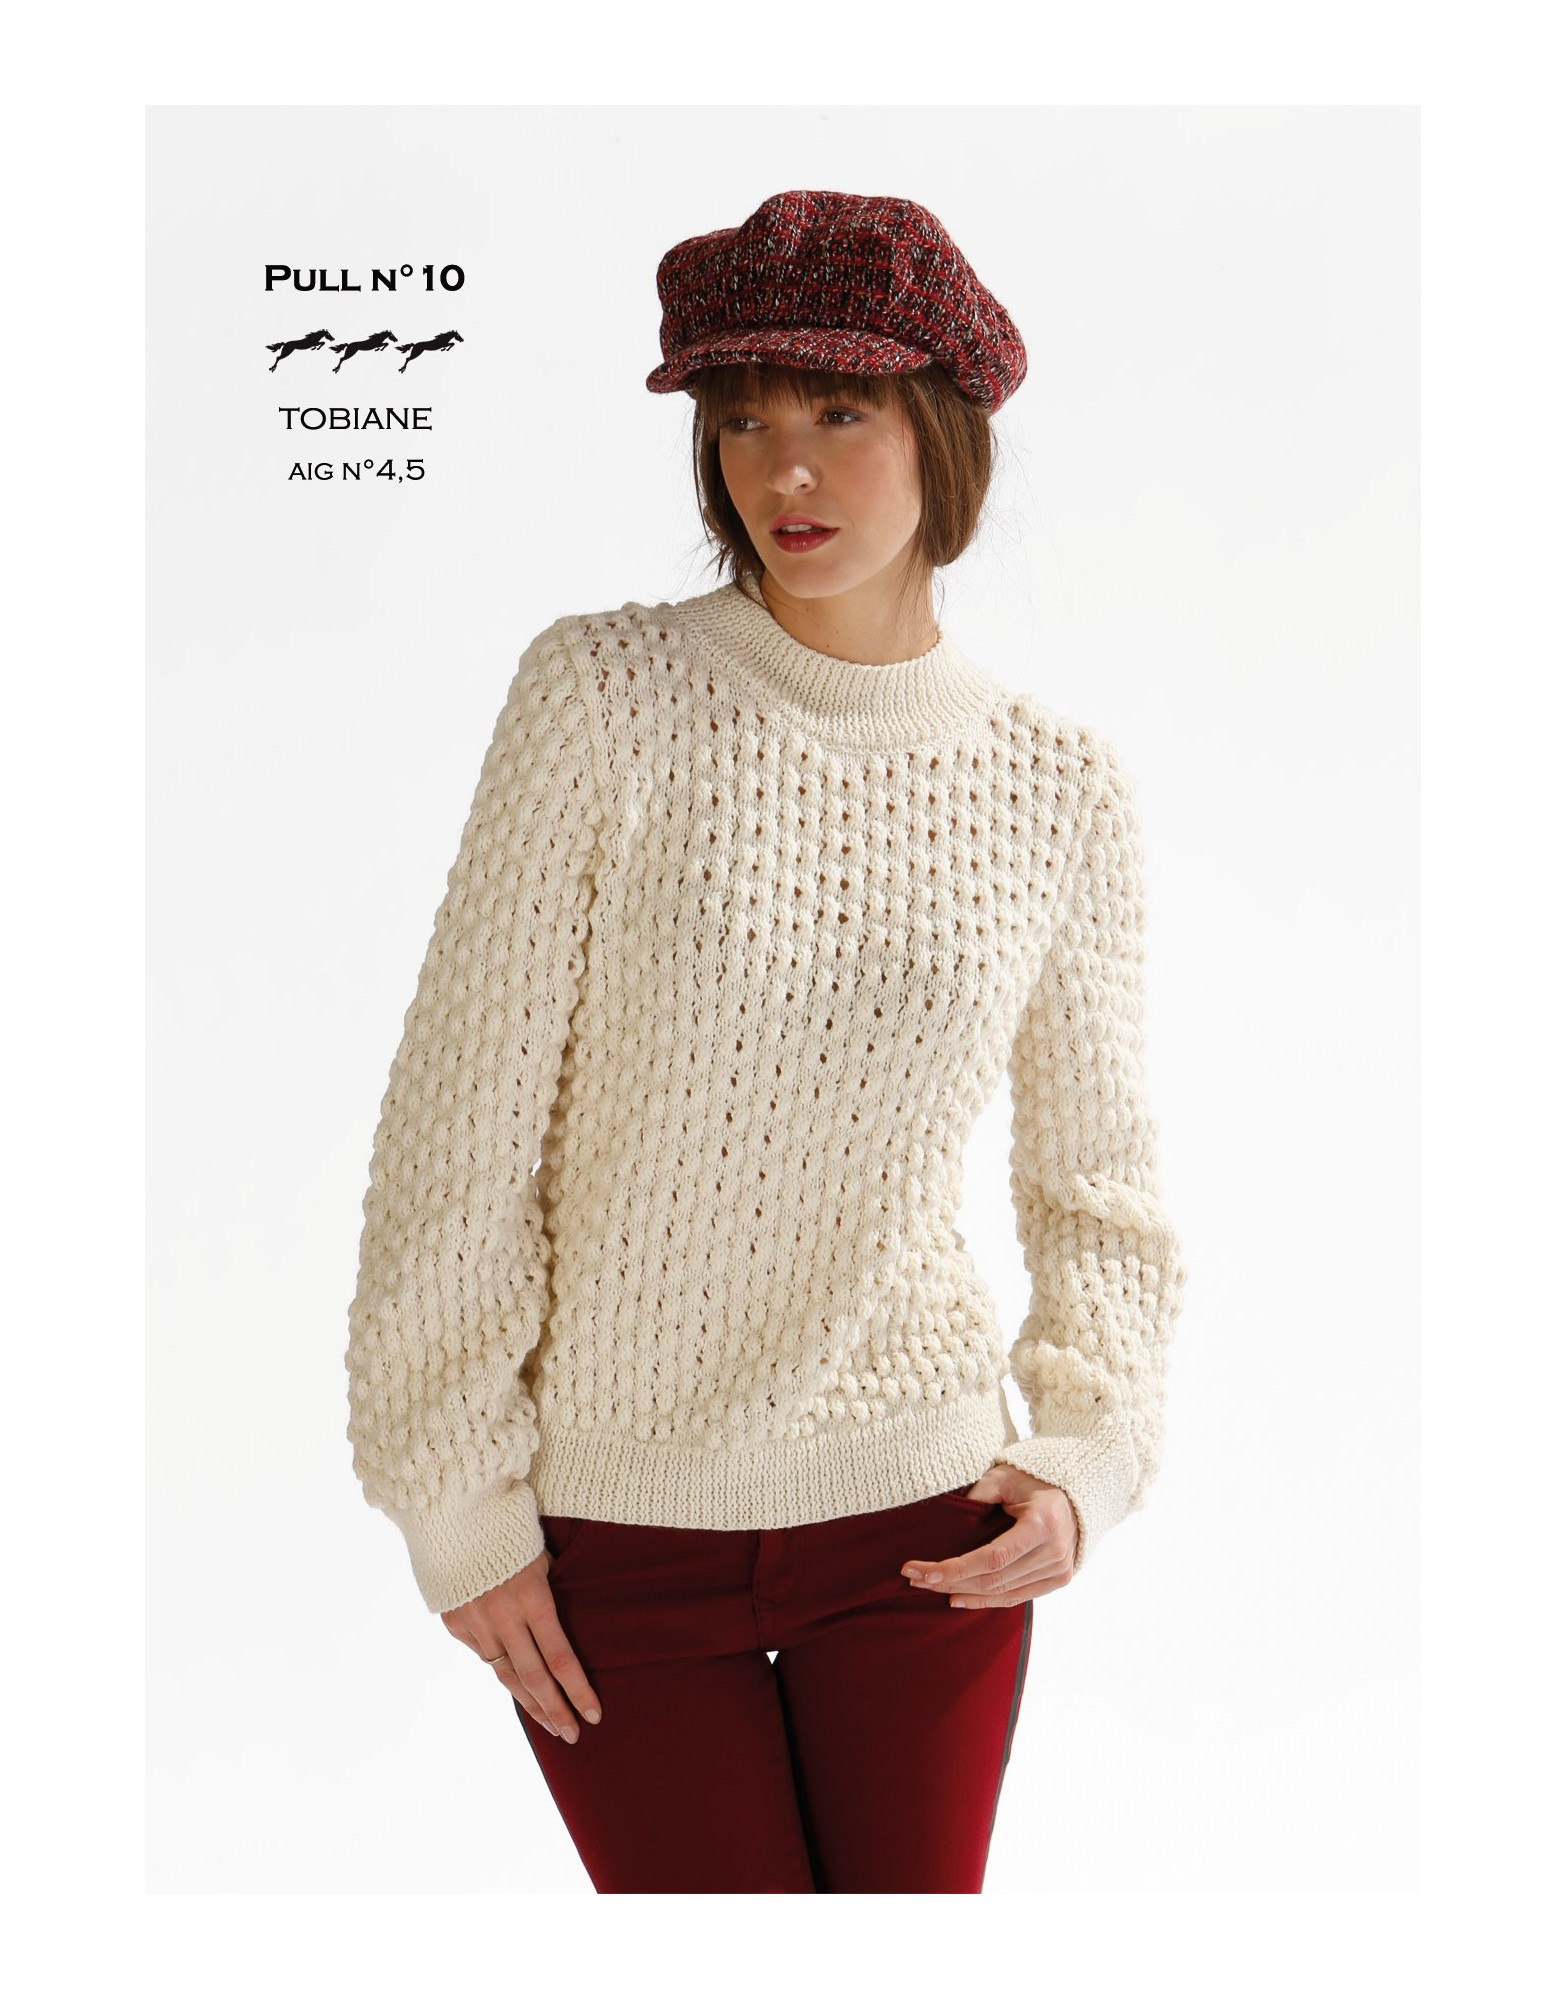 Modele pull long tricot